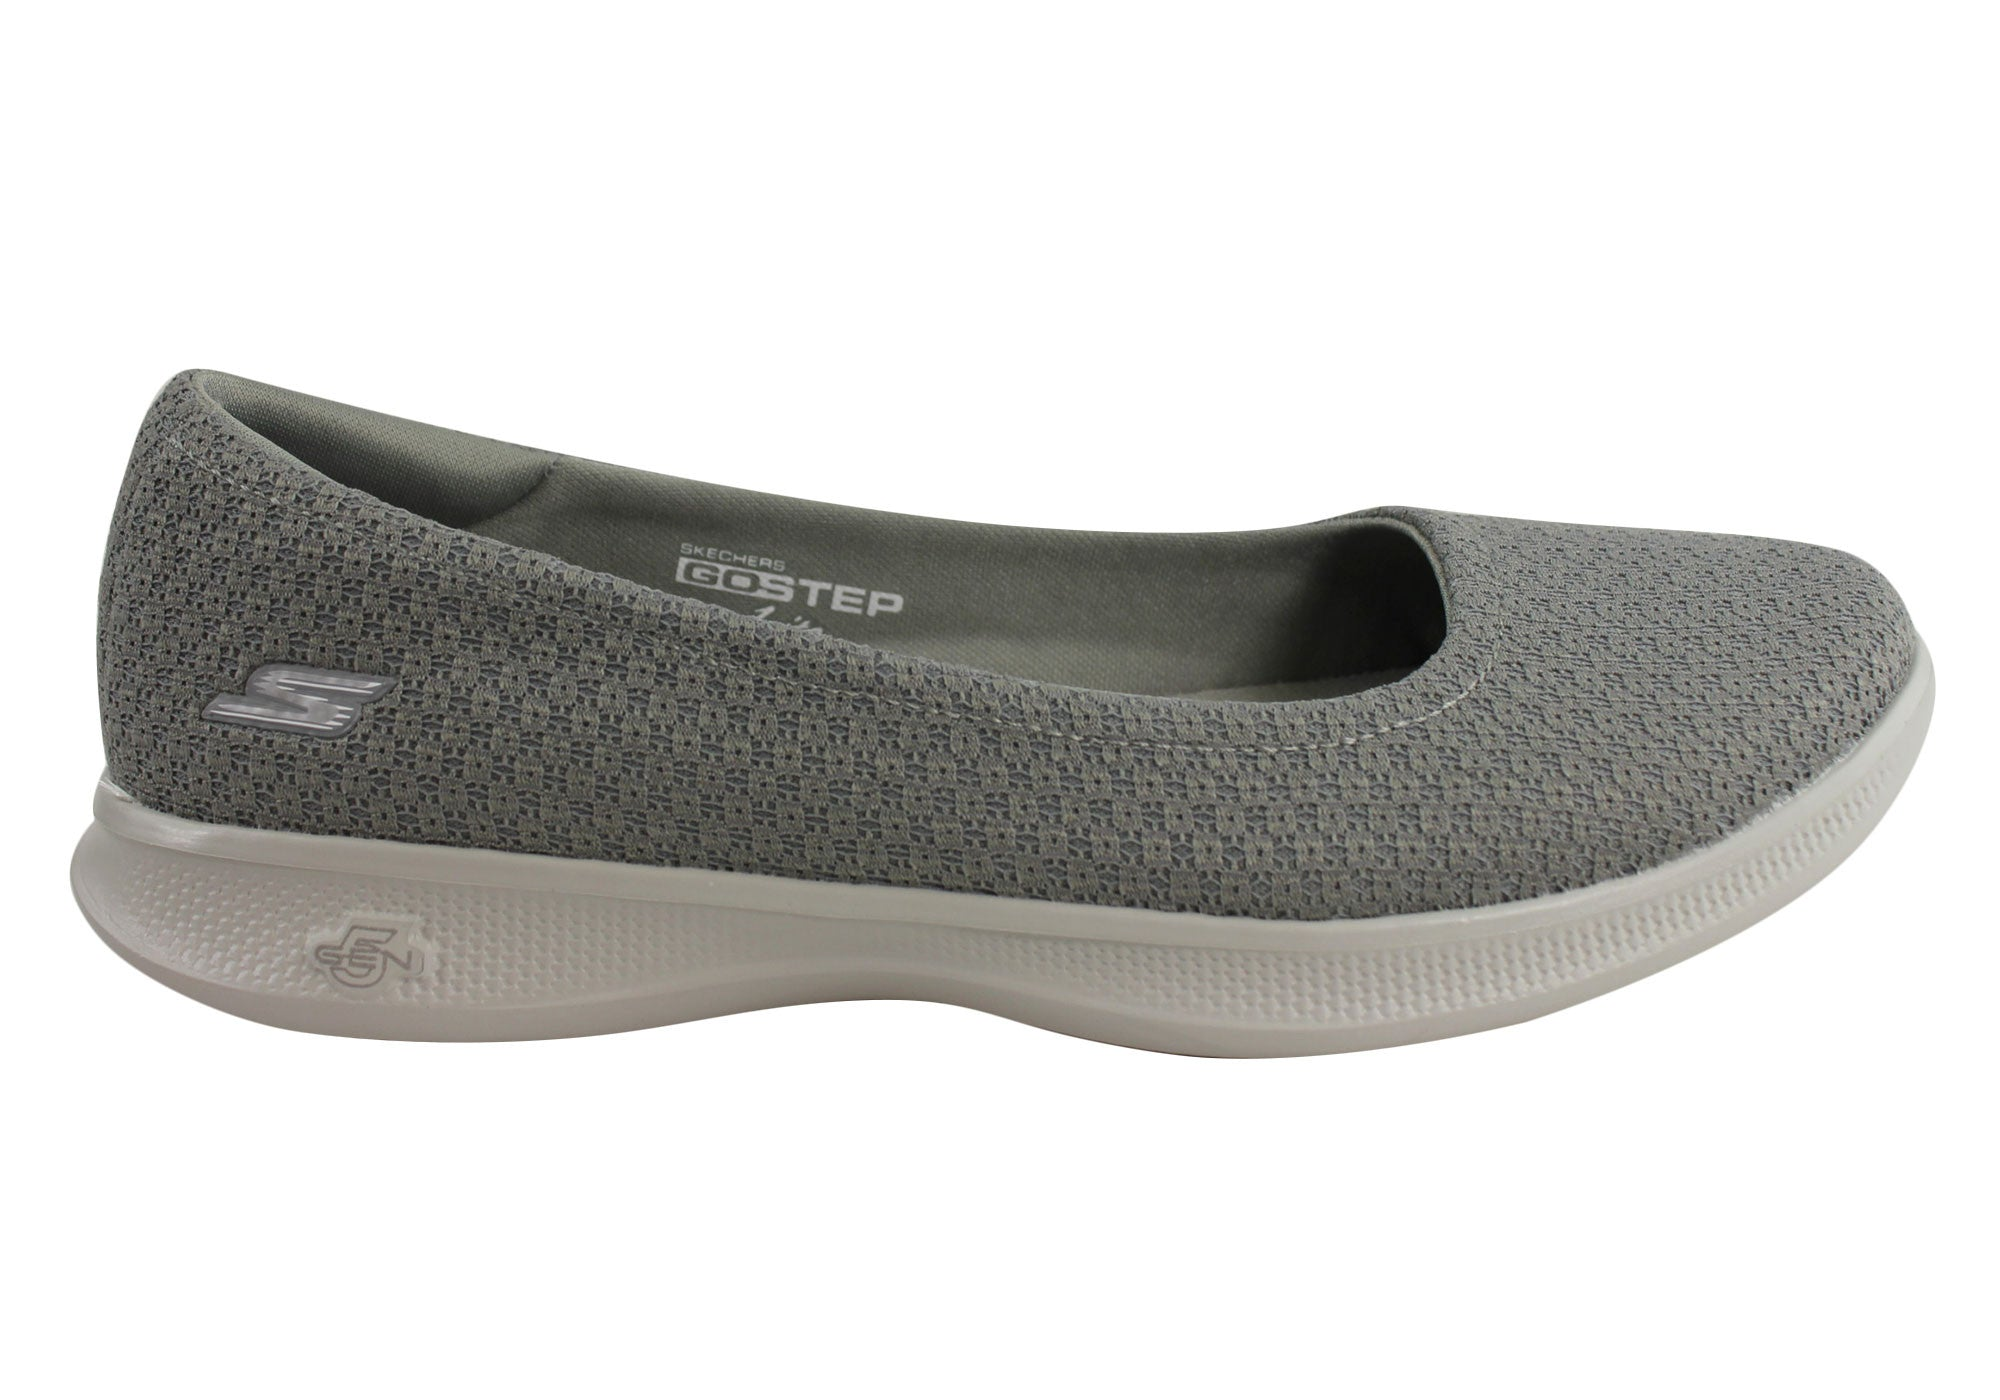 NEW-SKECHERS-GO-STEP-LITE-ENCHANTED-WOMENS-COMFORT-BALLET-FLATS